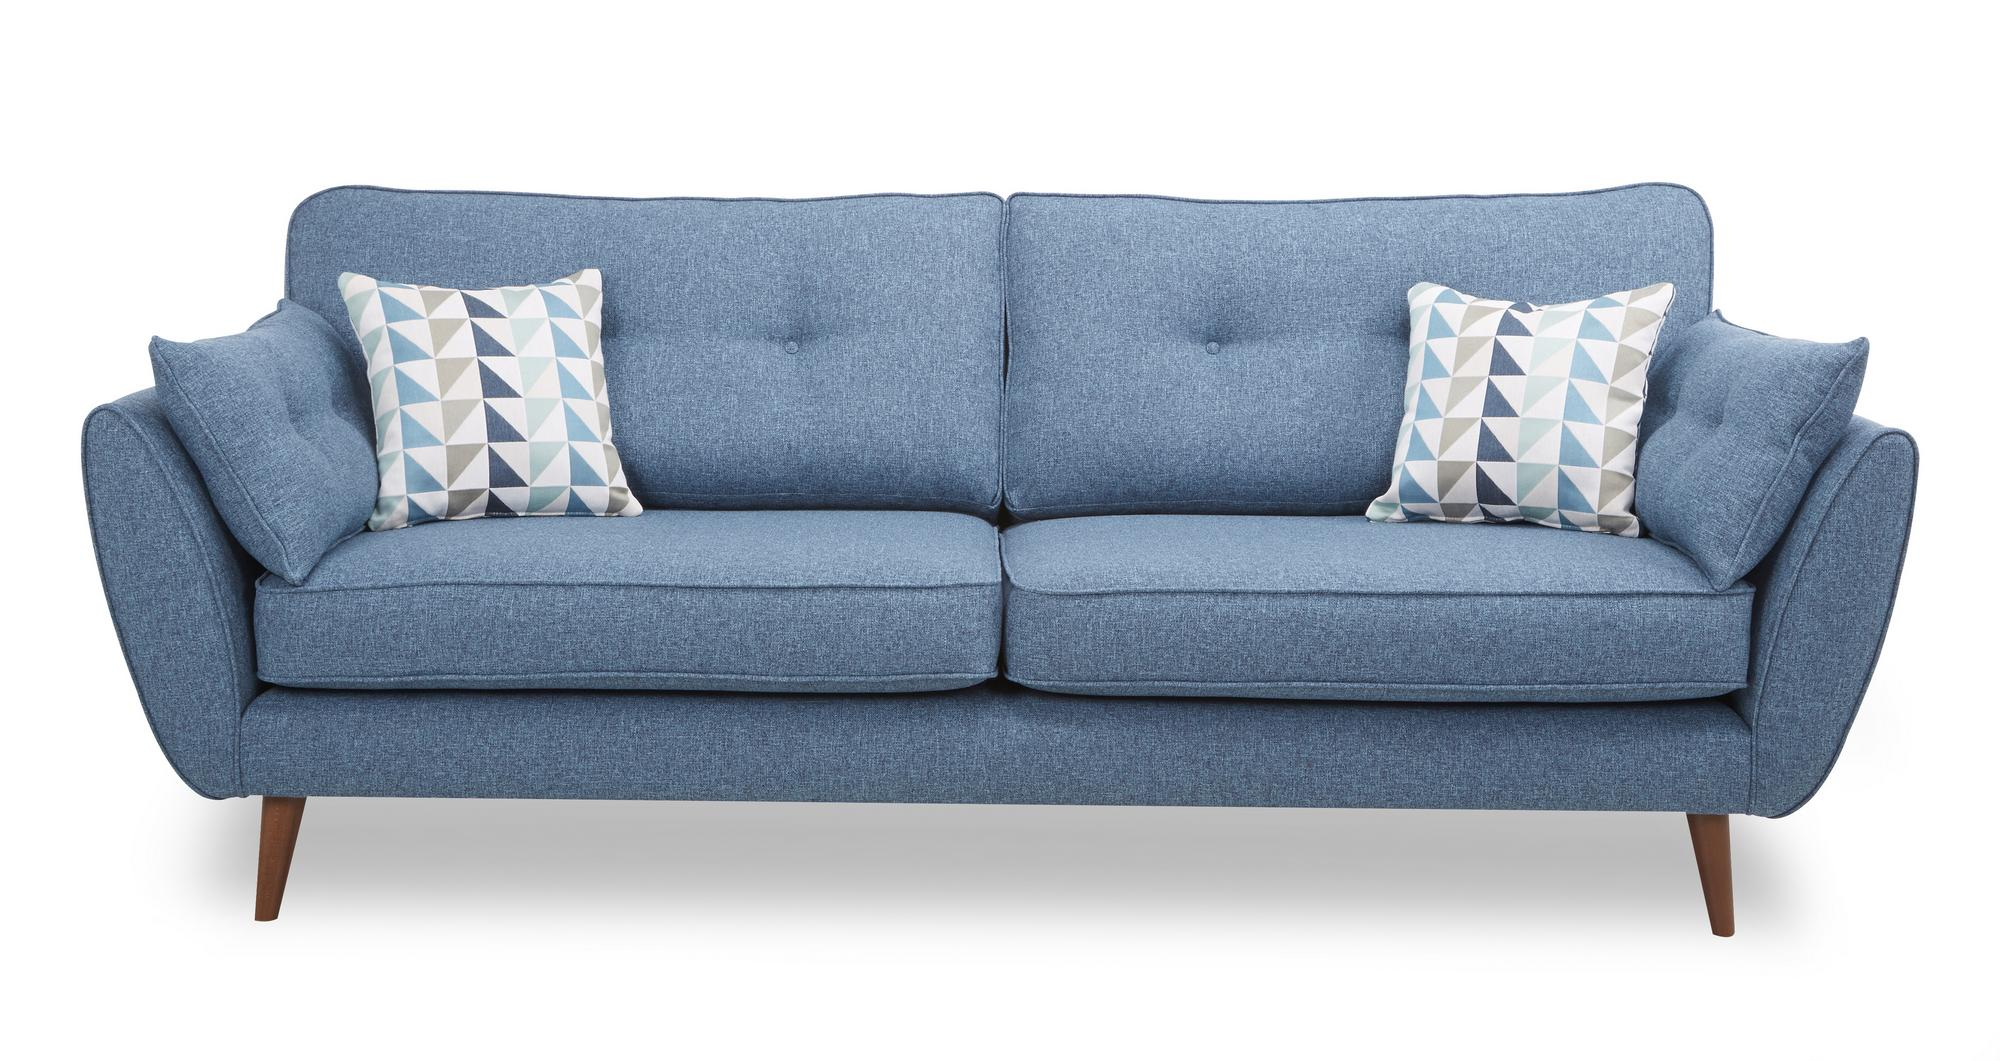 dfs zinc teal fabric 4 seater sofa 143888 ebay. Black Bedroom Furniture Sets. Home Design Ideas